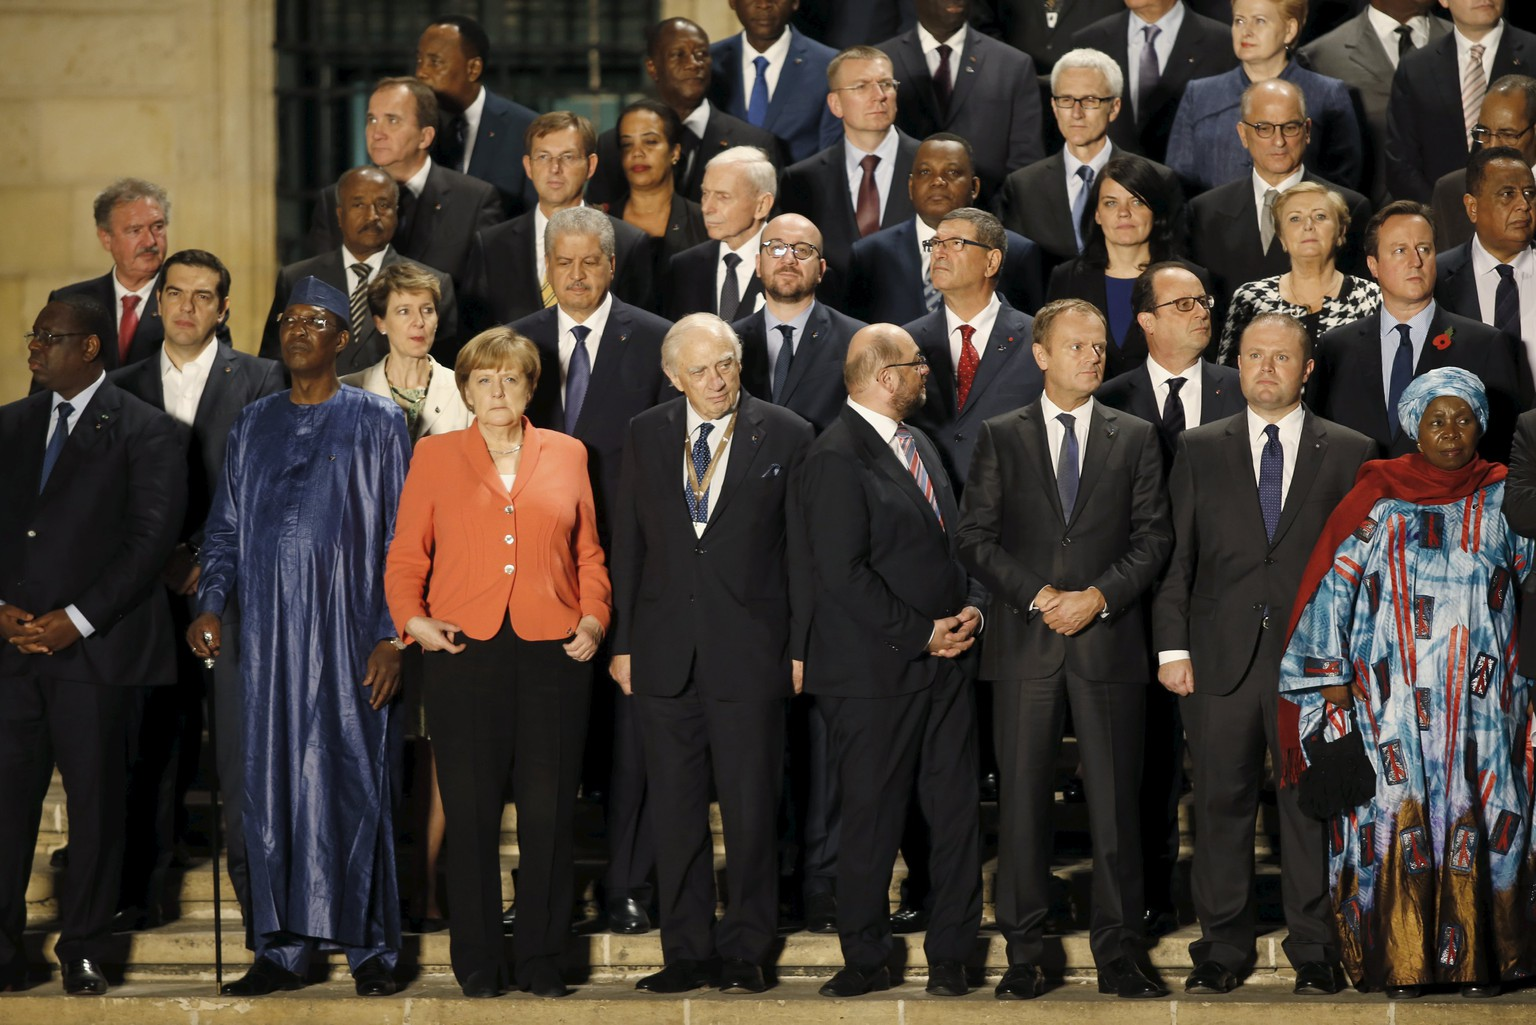 Leaders of the European Union and their African counterparts gather on the steps of the office of Malta's Prime Minister Joseph Muscat for the opening ceremony of the Valletta Summit on Migration in Valletta, Malta, November 11, 2015. Leaders of the European Union met African counterparts on Malta on Wednesday, hoping pledges of cash and other aid can slow the flow of migrants crossing the Mediterranean from the world's poorest continent to wealthy Europe.   REUTERS/Darrin Zammit Lupi MALTA OUT. NO COMMERCIAL OR EDITORIAL SALES IN MALTA.